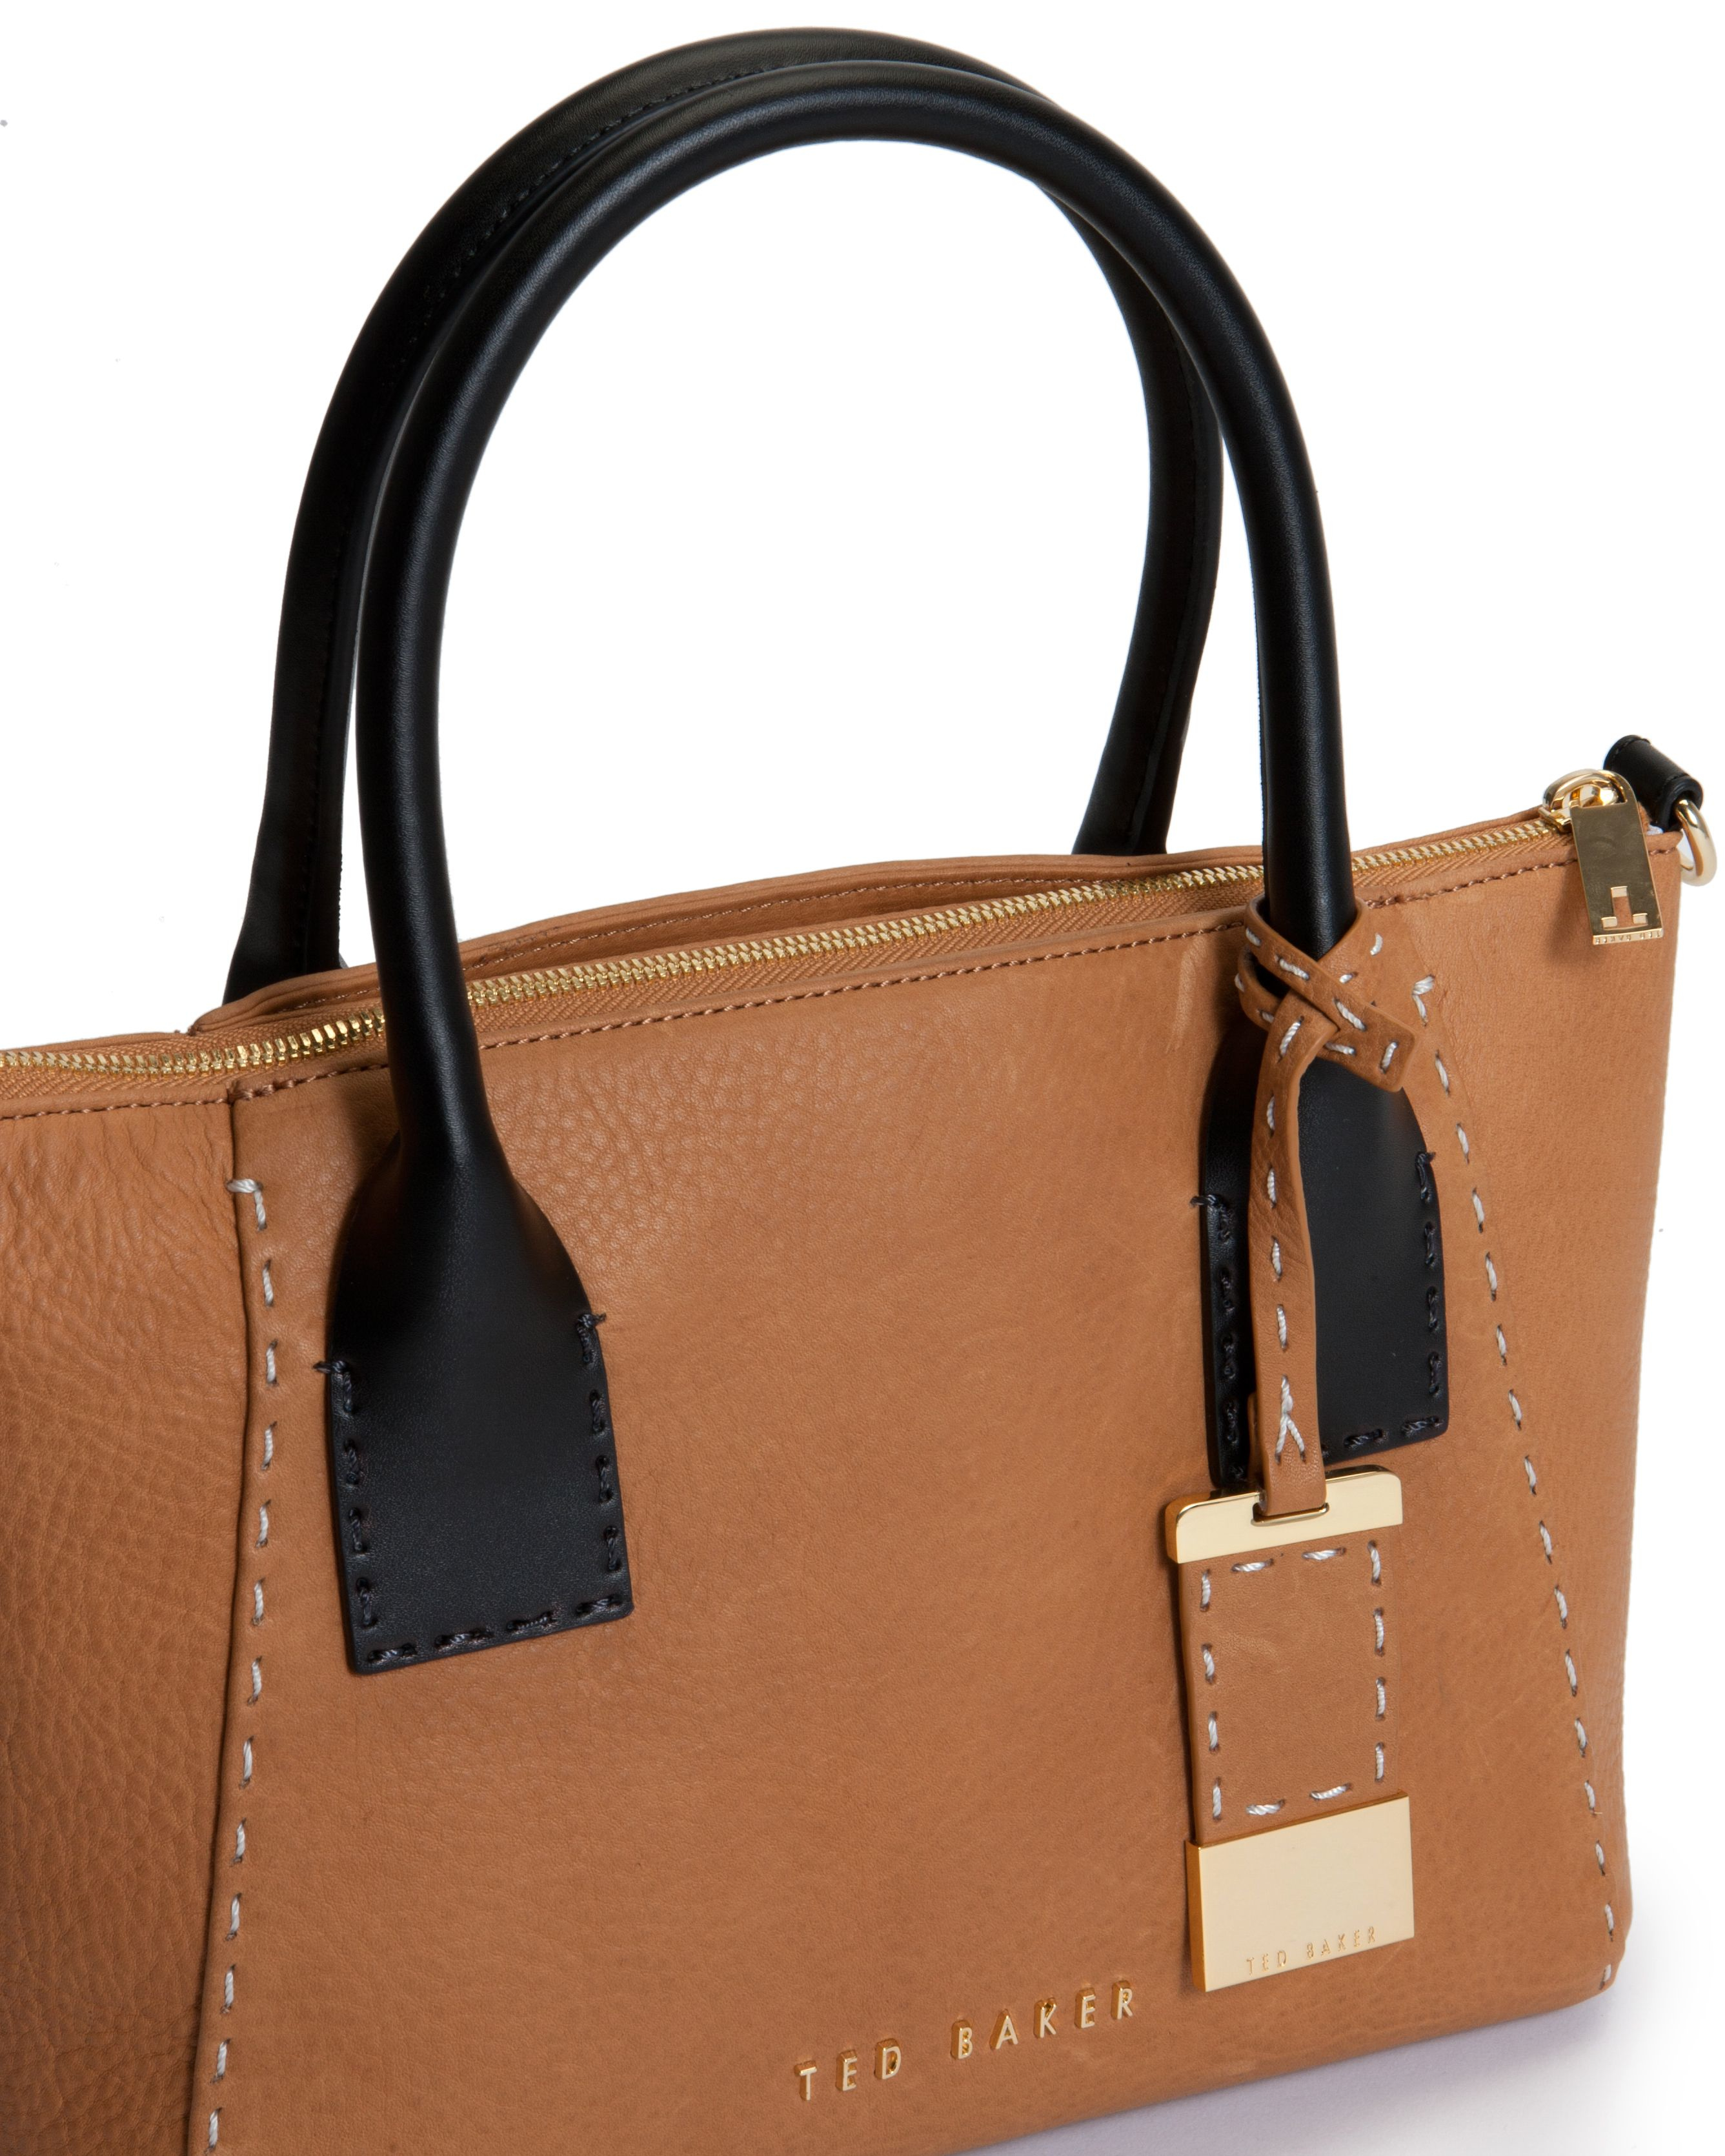 Ted baker Lauren Small Leather Tote Bag in Brown | Lyst